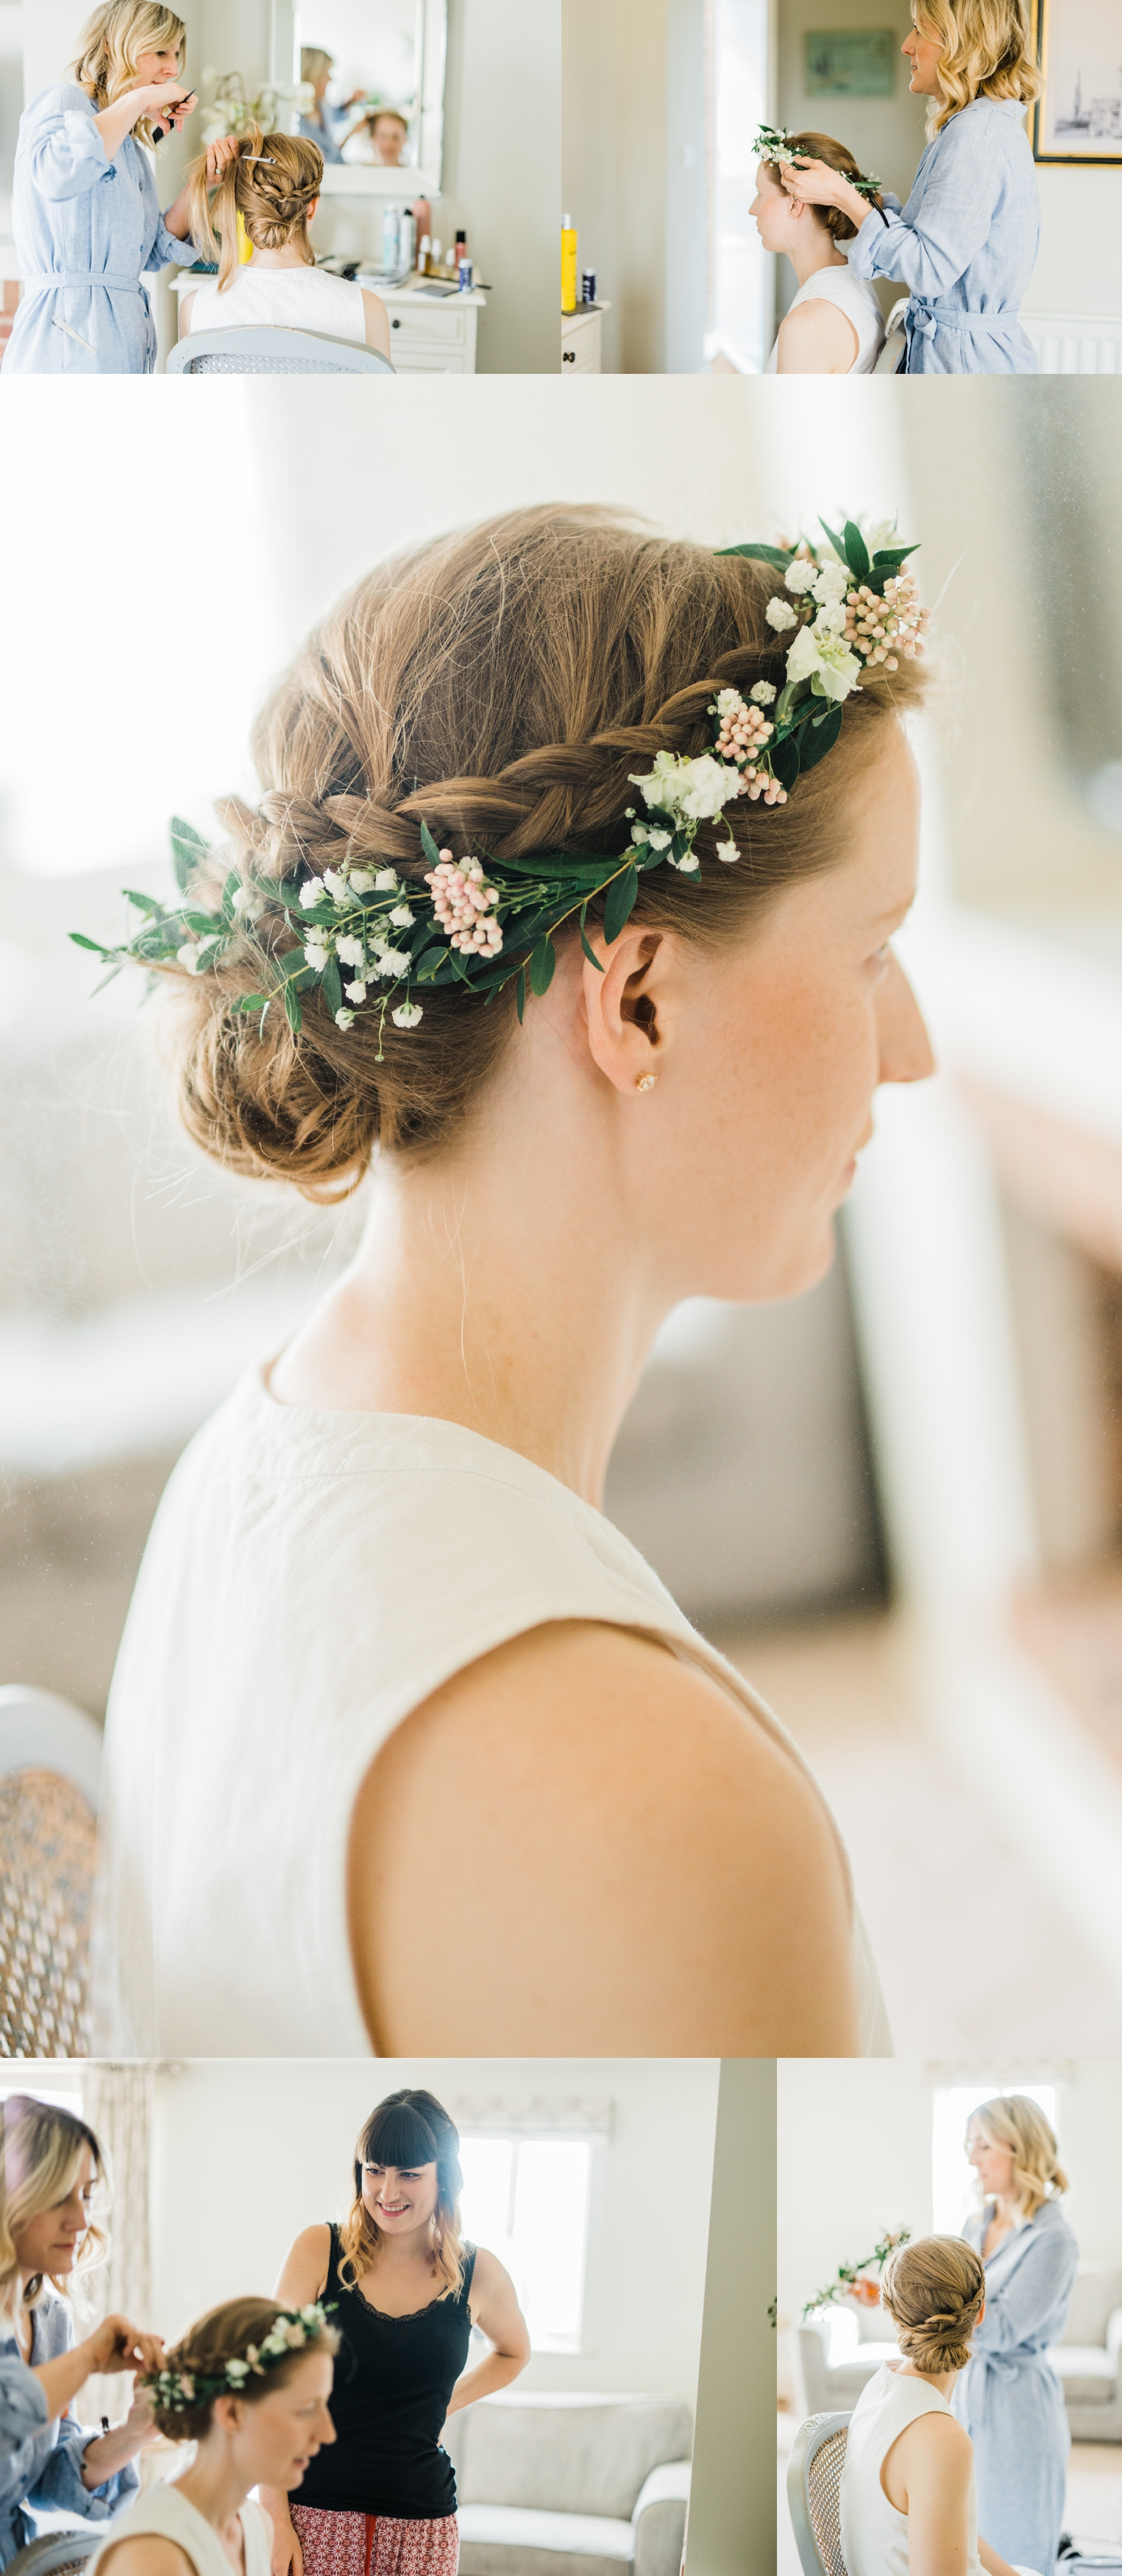 Hairstylist styling brides hair and placing a flower crown on brides head